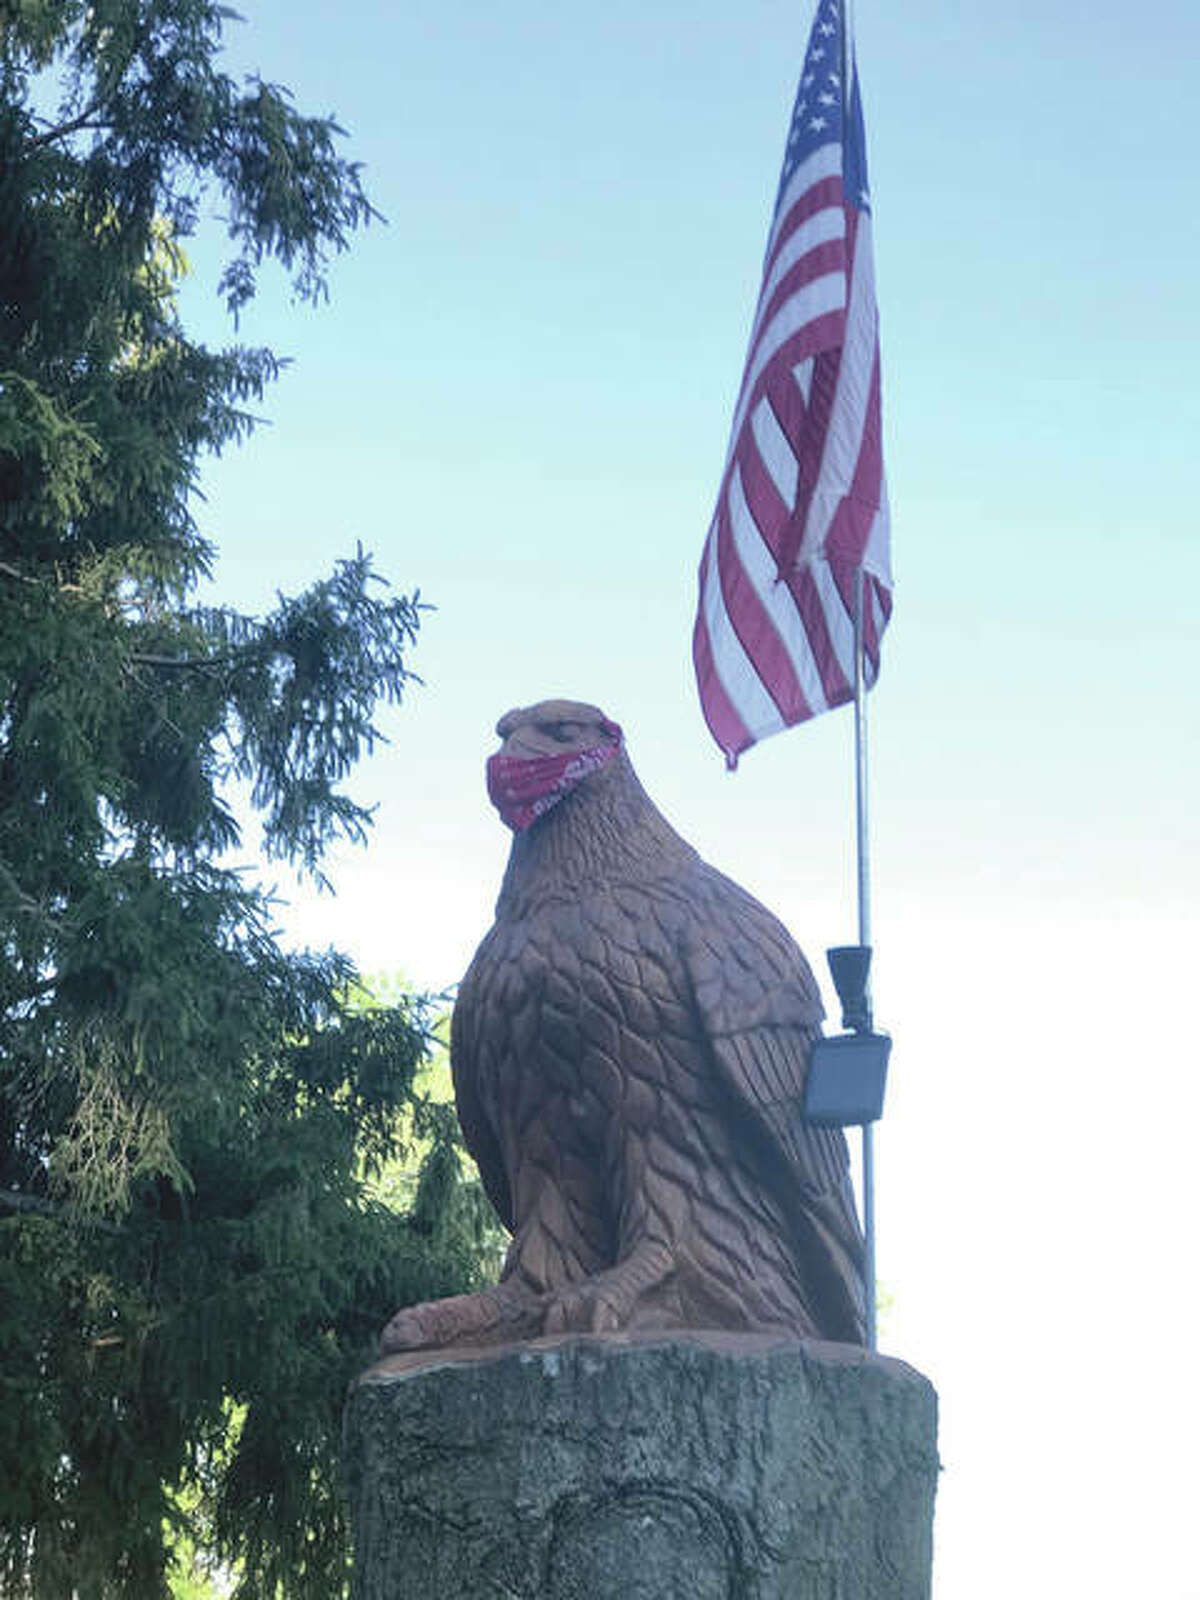 An eagle sculpture isn't taking any chances as it sports a face covering near Franklin.